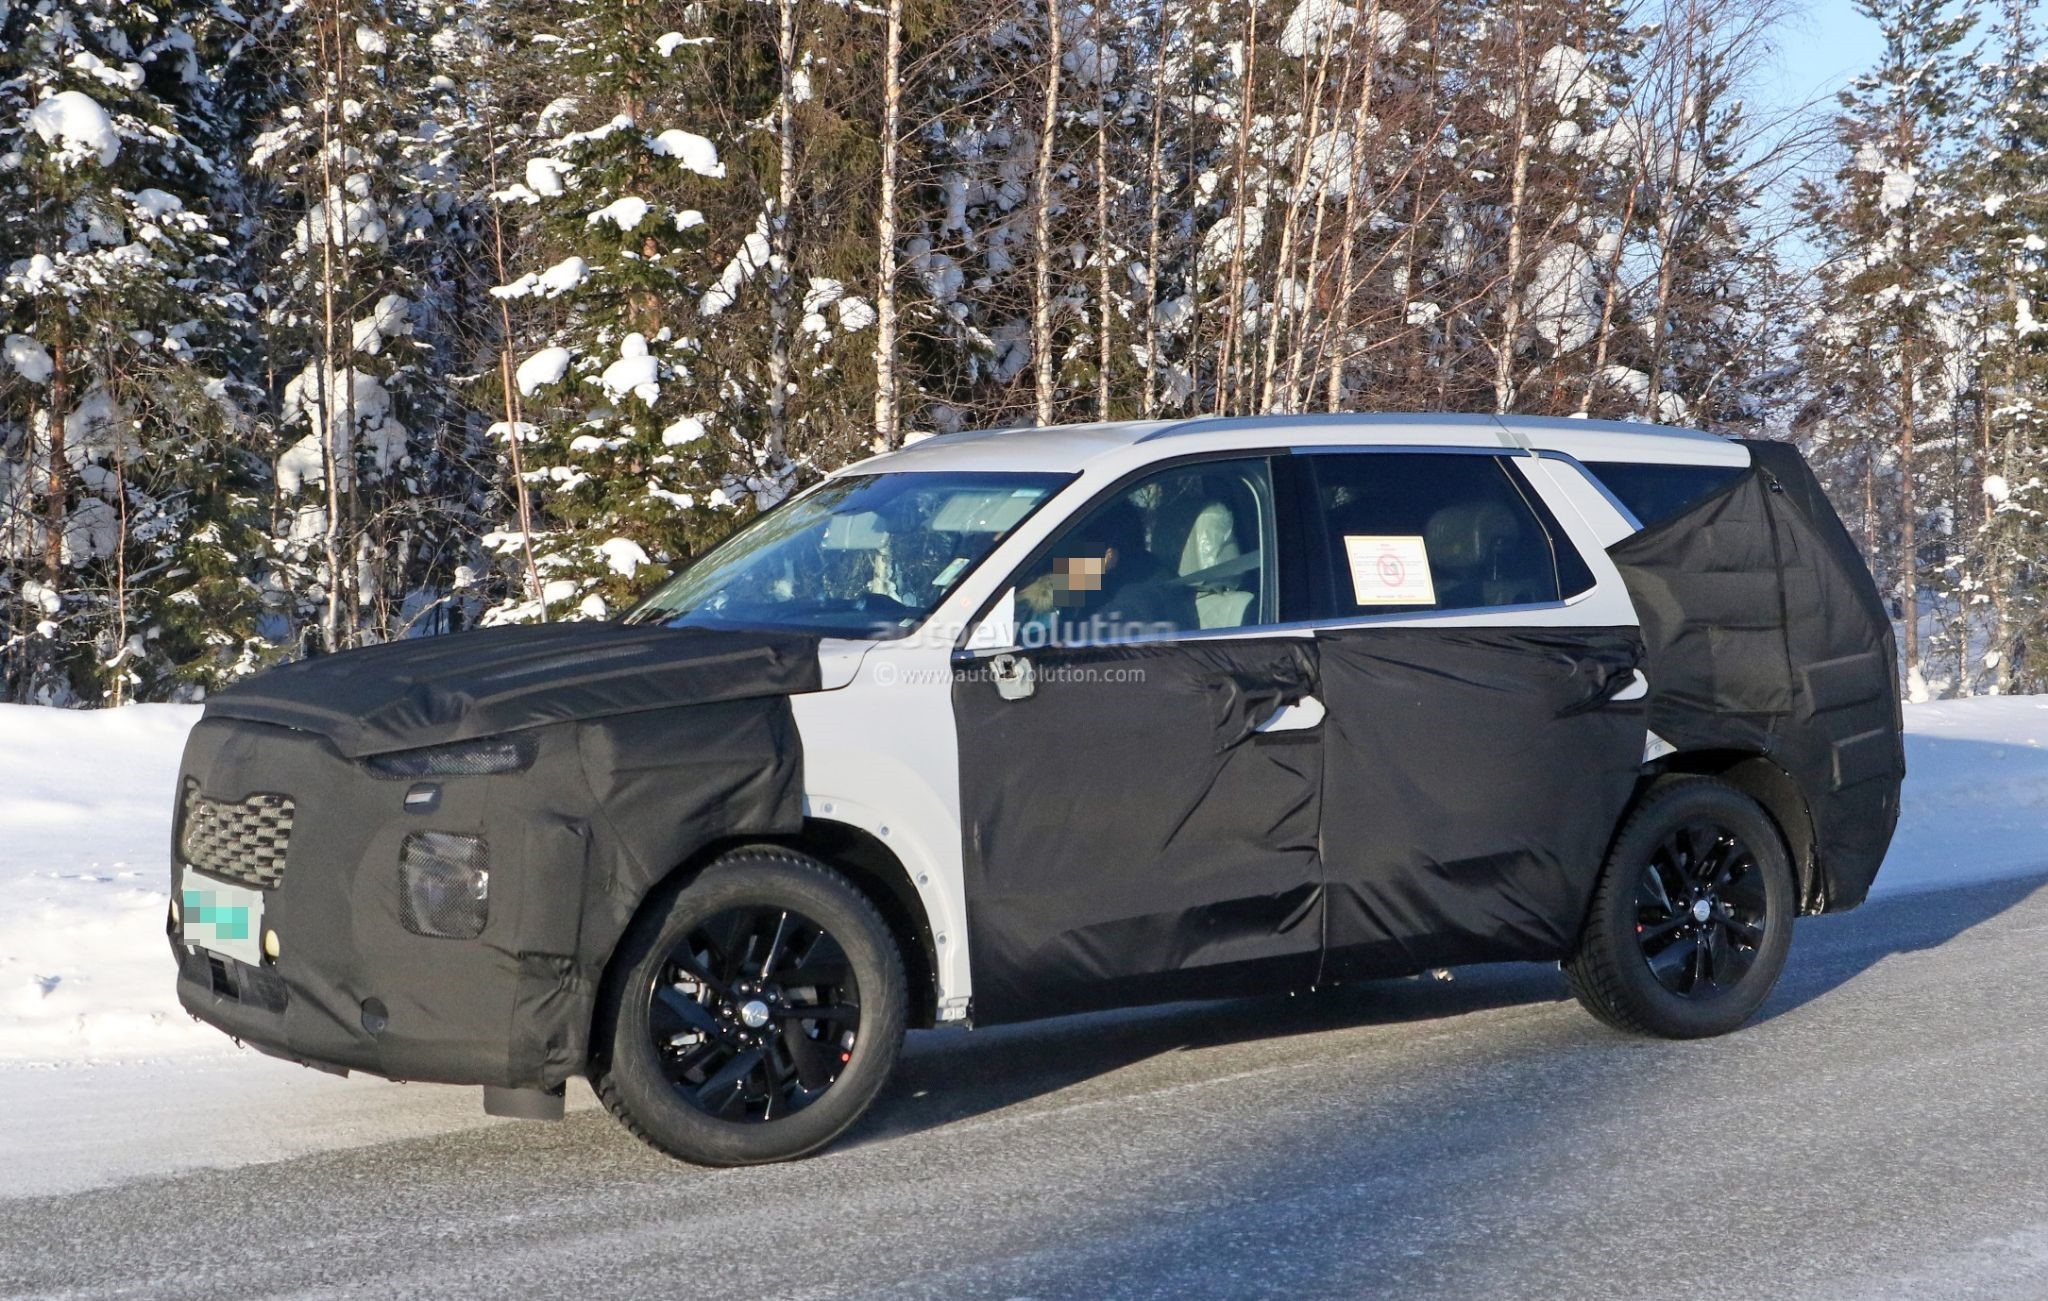 2020 hyundai eight seat large suv spied benchmarking against volvo xc90